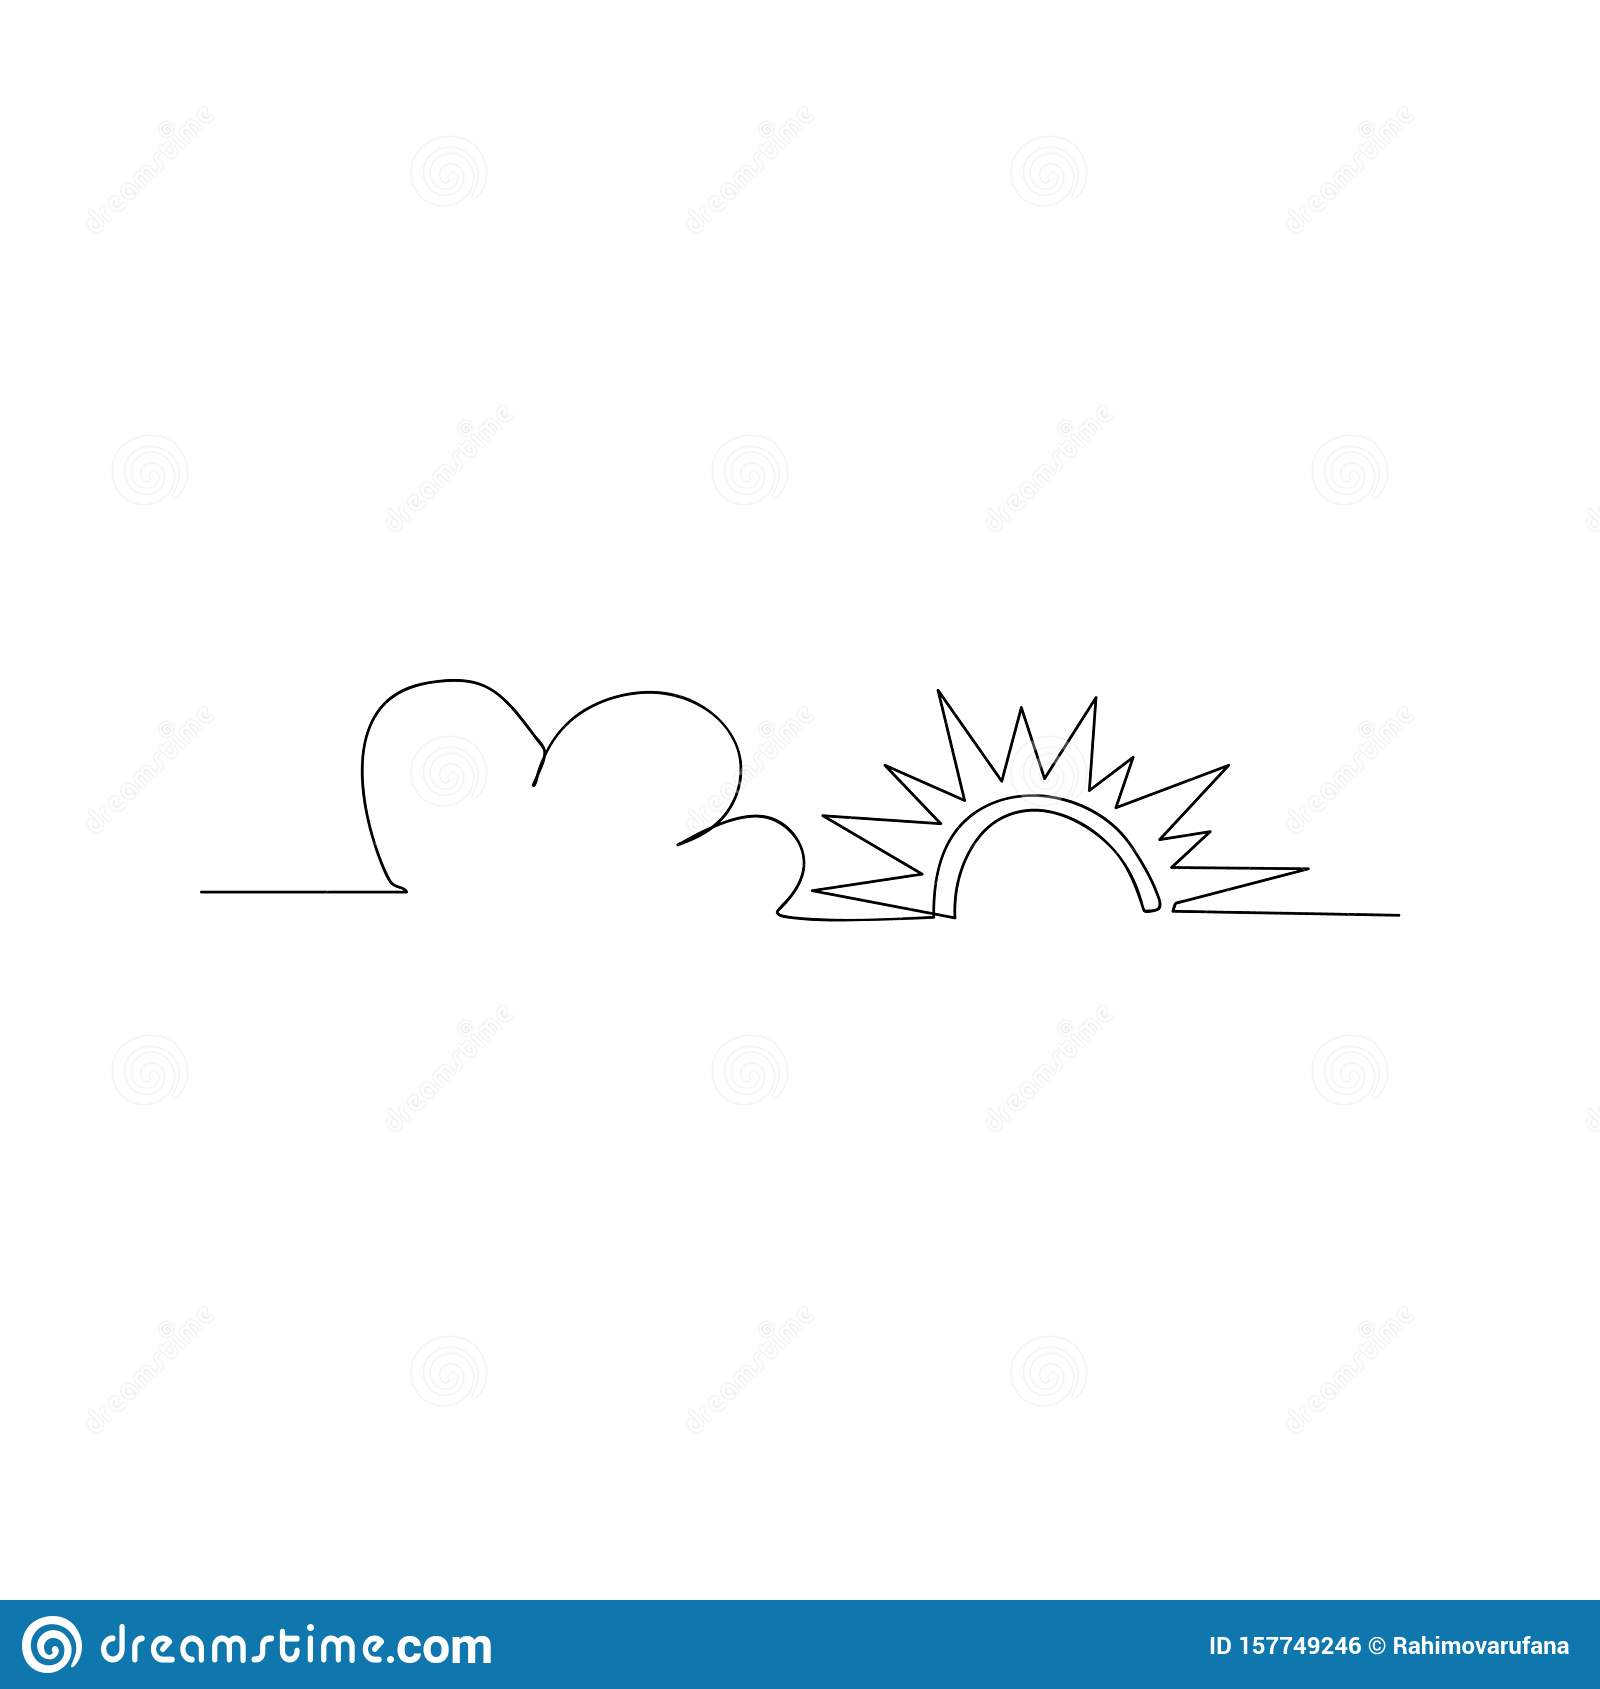 continuous line drawing of sun and cloud. isolated sketch drawing of sun and cloud line concept. outline thin stroke vector